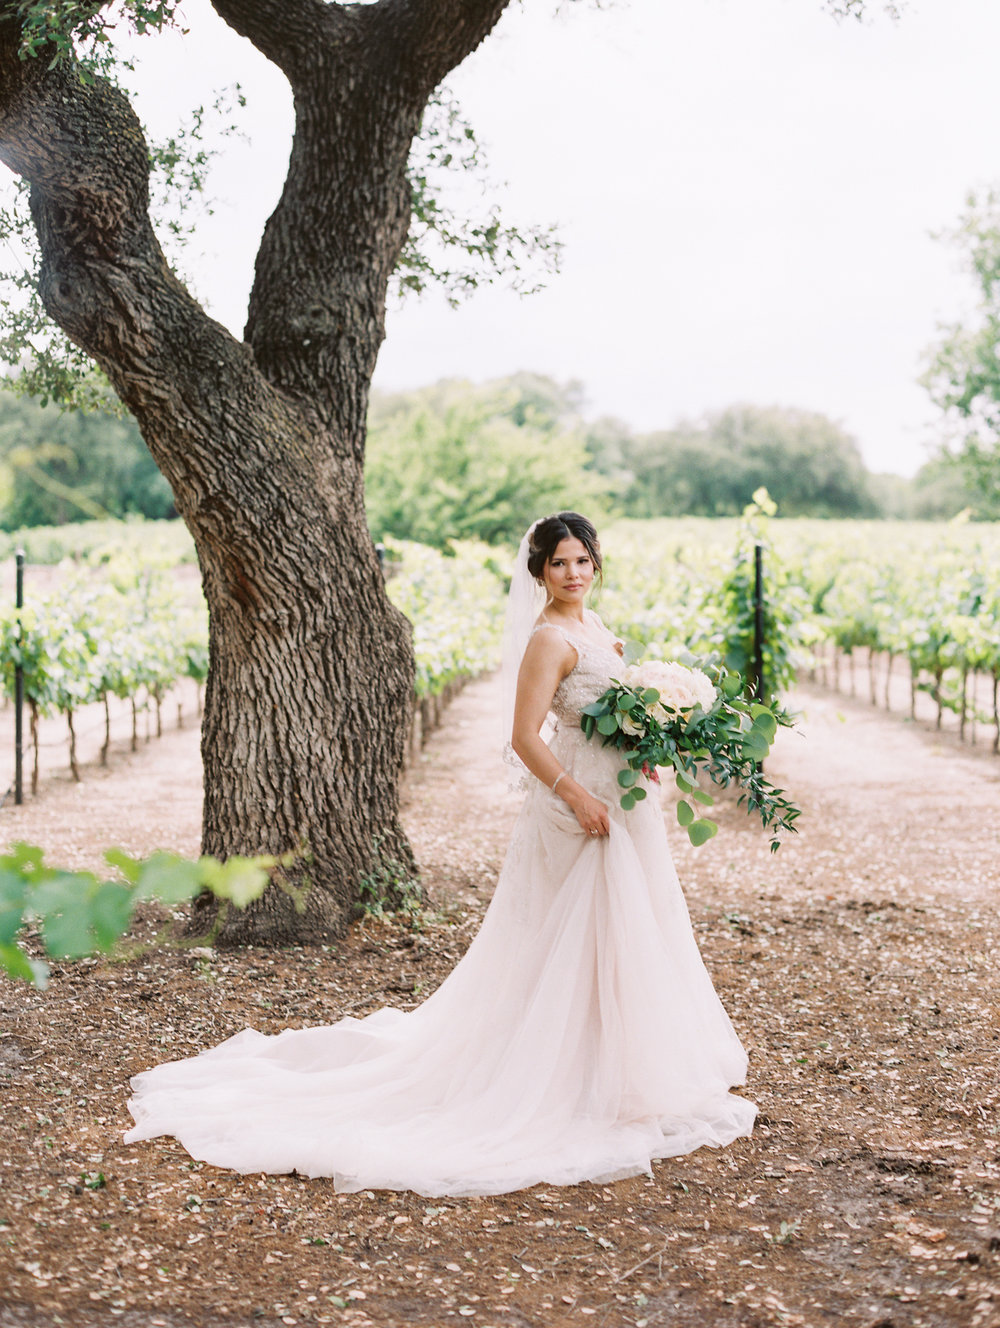 Elegant Spring Vineyard Wedding | Film Wedding Photographer | Austin Wedding Photographer | Bride's Wedding Day Portrait | Britni Dean Photography // britnidean.com